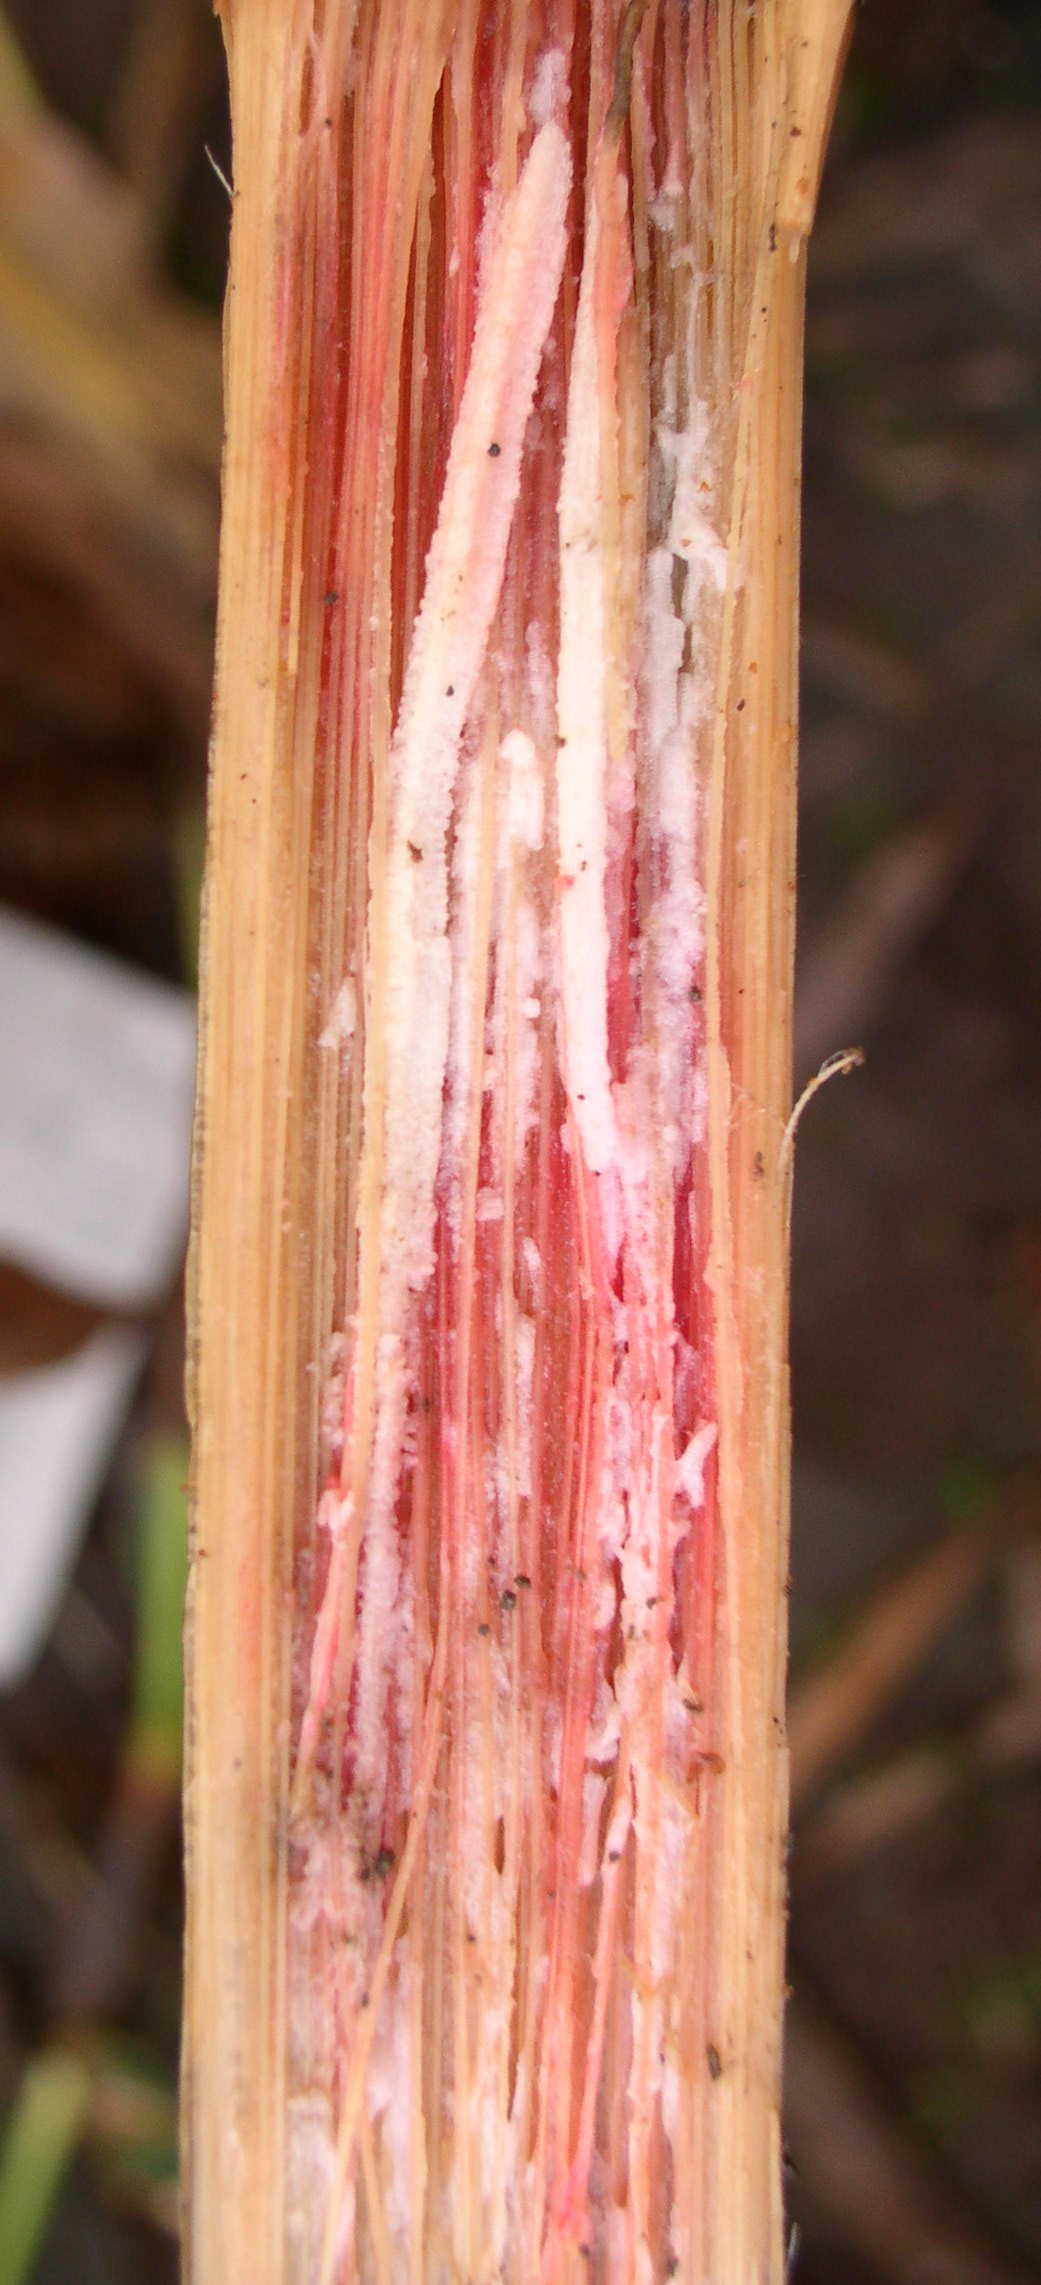 Distinct pink discoloration of pith characteristic of Gibberella stalk rot.